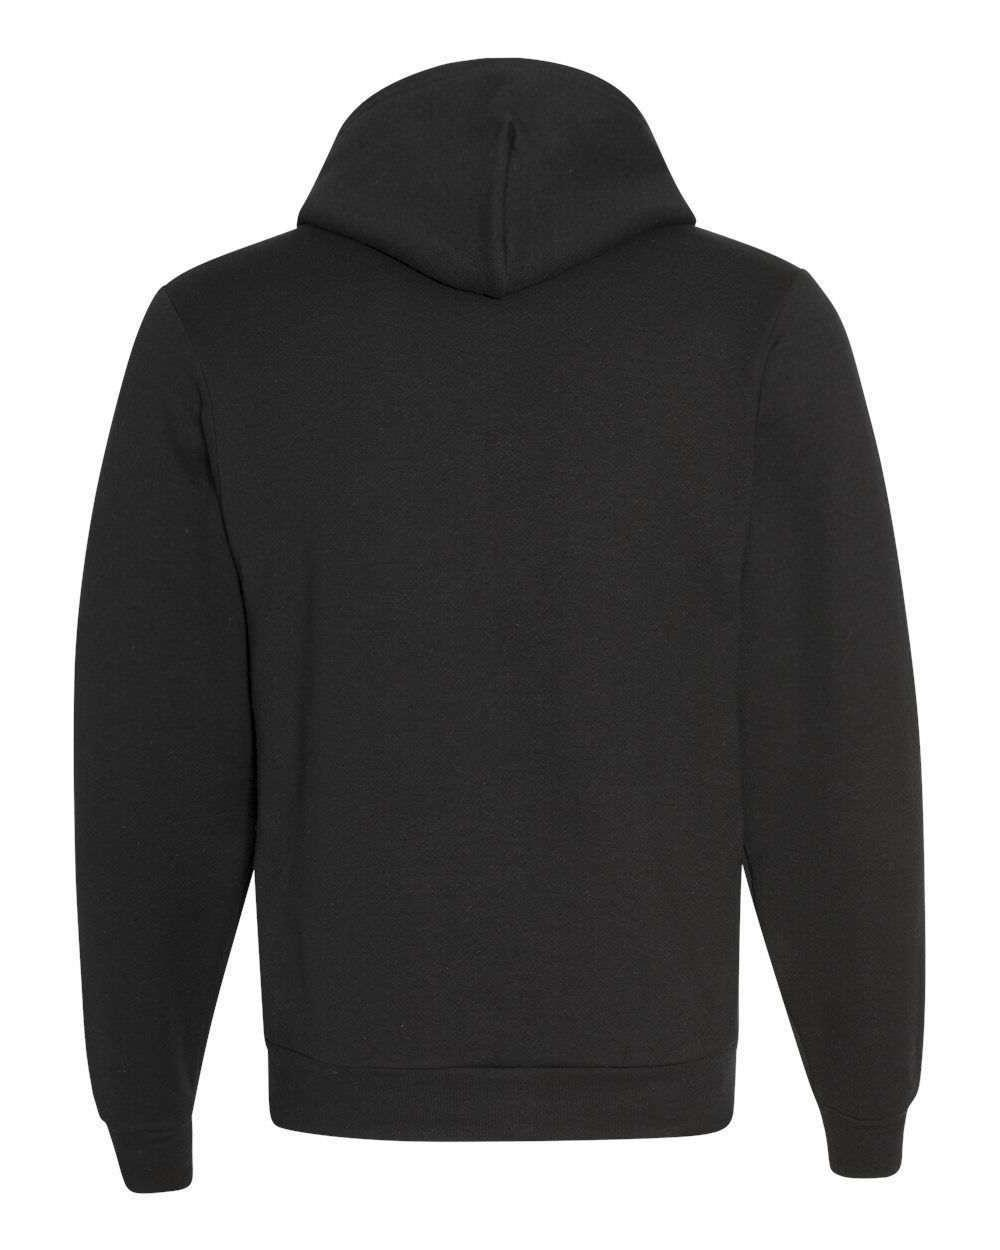 American Apparel - Hoodie UNISEX Hooded XS-2XL,